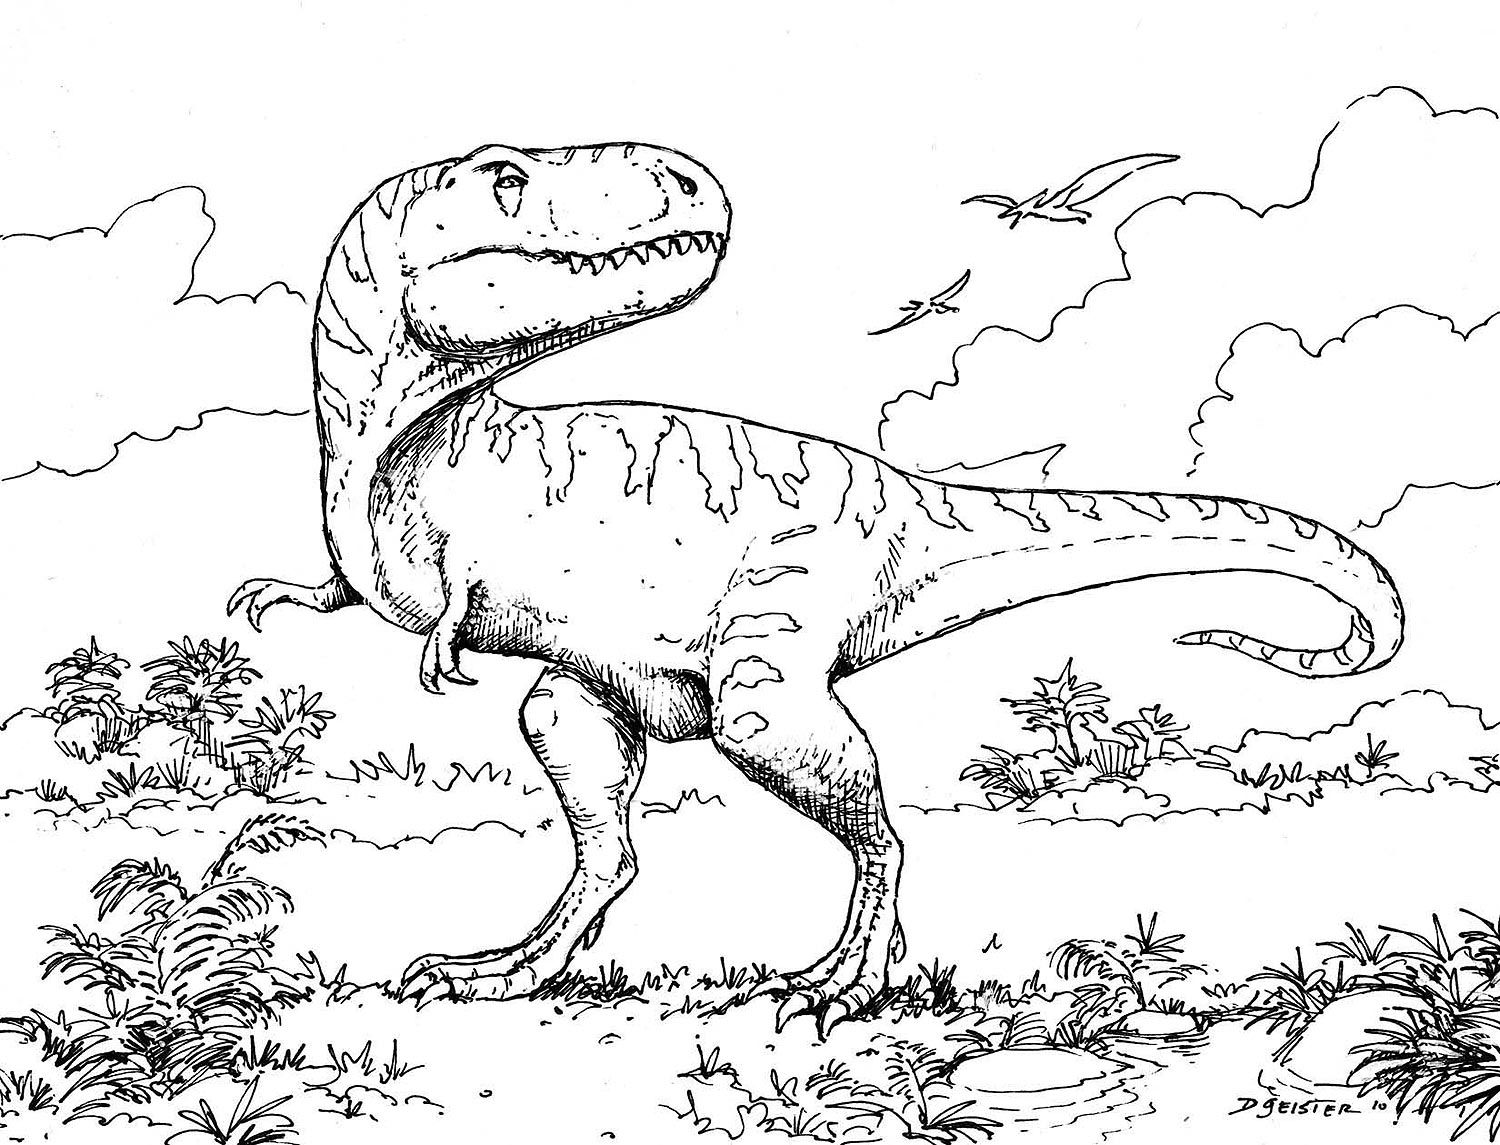 cartoon dinosaur coloring pictures 40 outstanding dinosaur coloring pages dinosaur coloring cartoon pictures coloring dinosaur